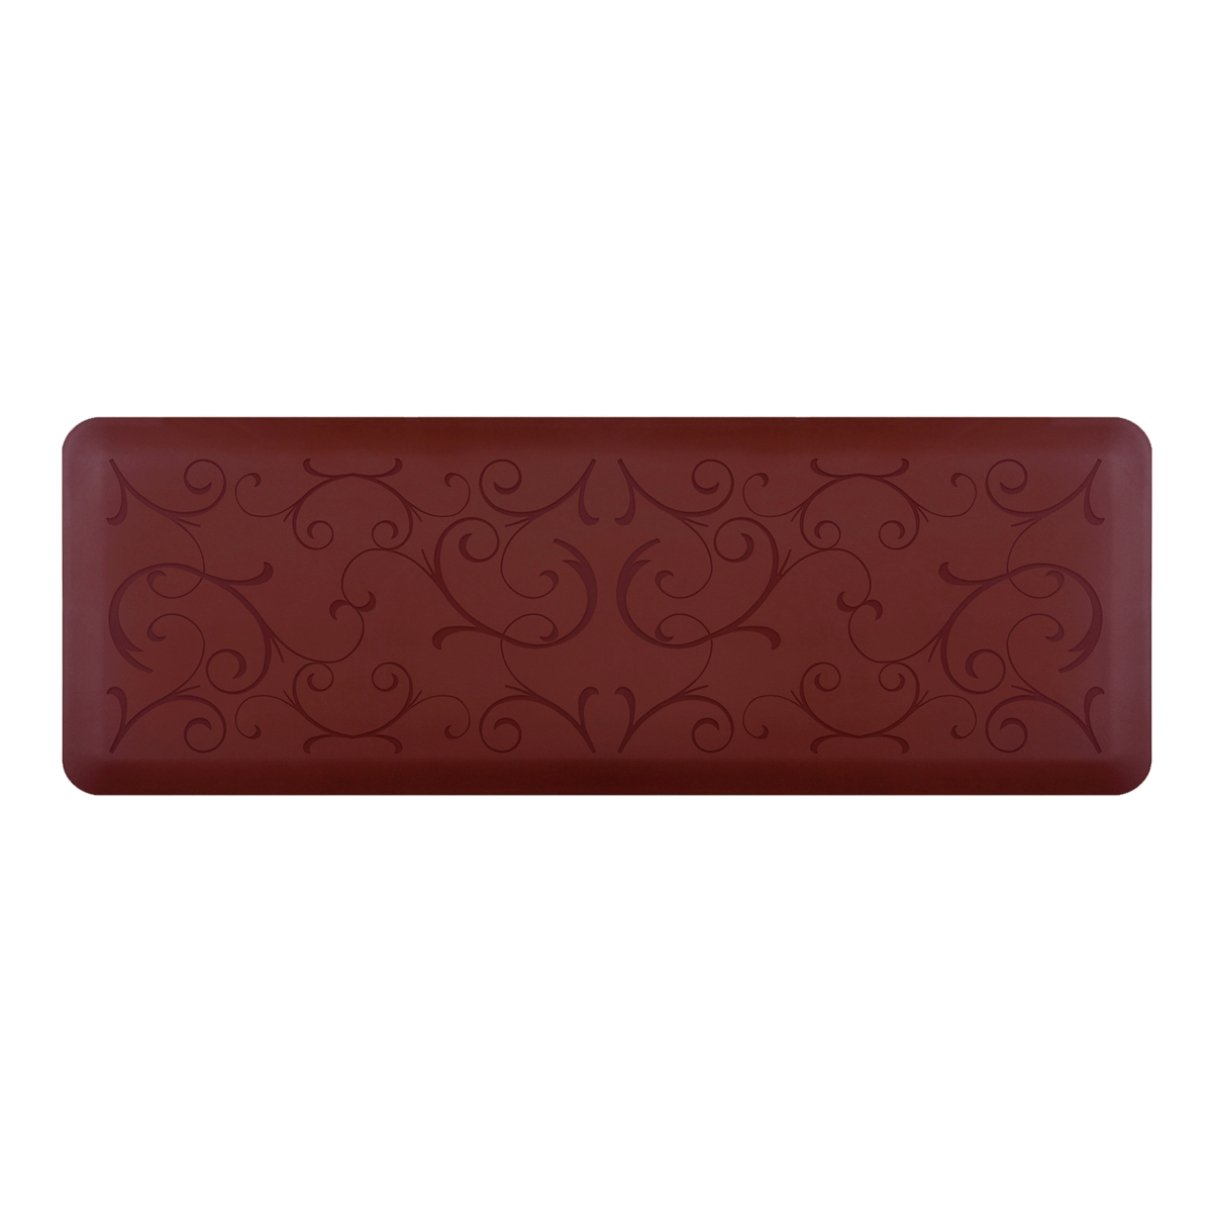 WellnessMats Bella Motif Anti-Fatigue Mat, Burgundy, 72 Inch by 24 Inch by WellnessMats